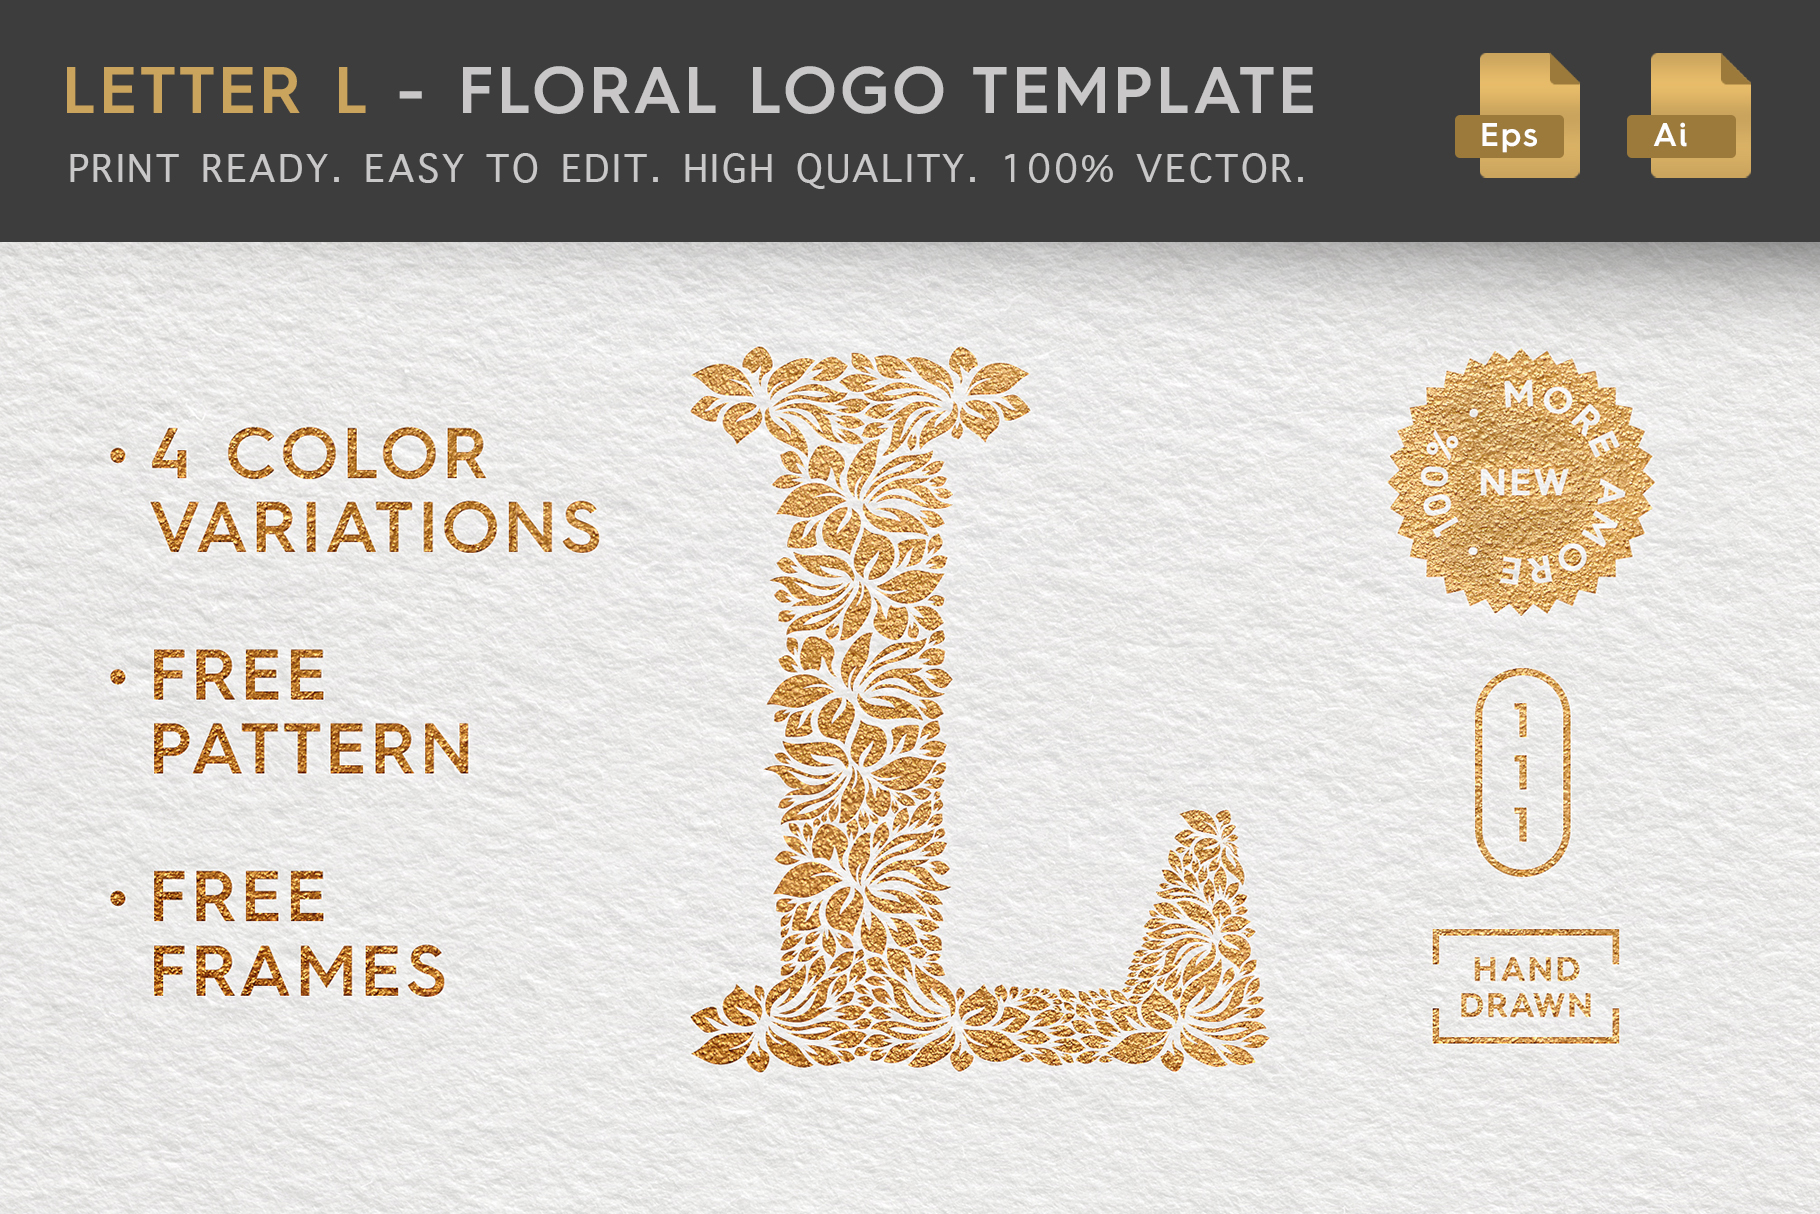 Letter L - Floral Logo Template example image 1